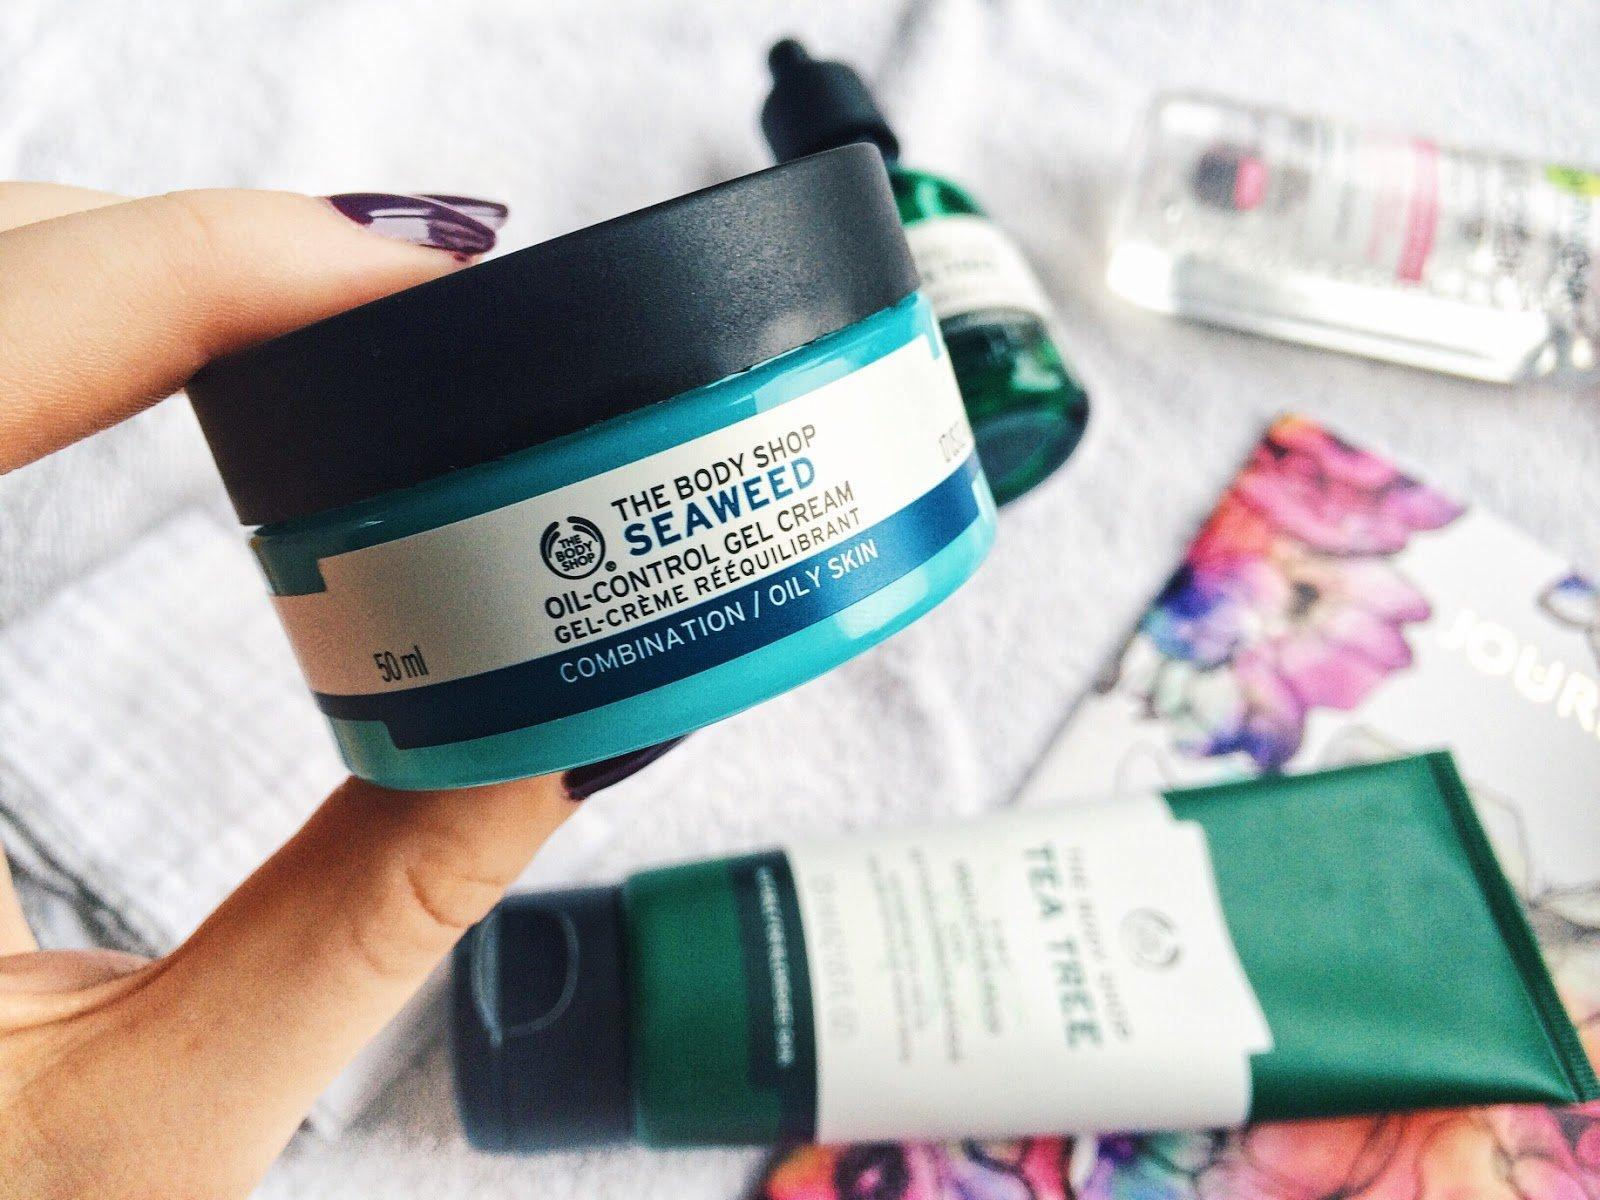 Kem dưỡng ẩm dạng gel The Body Shop Seaweed Oil-Control Gel Cream (ảnh: Internet)